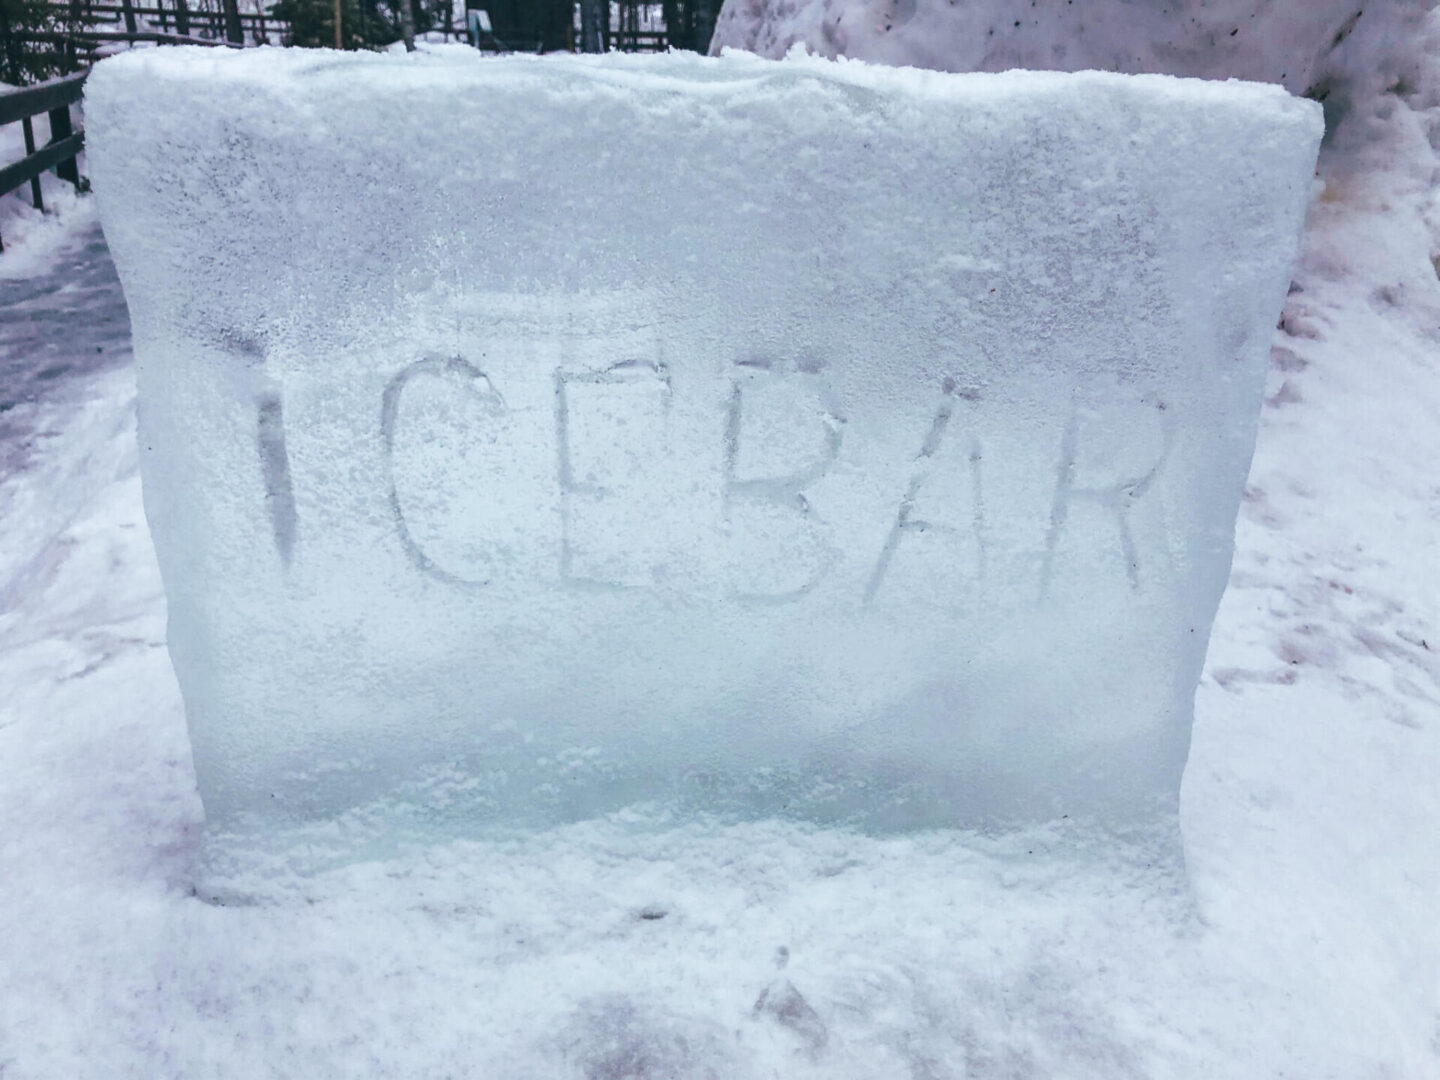 A block of ice with ice bar etched into the ice